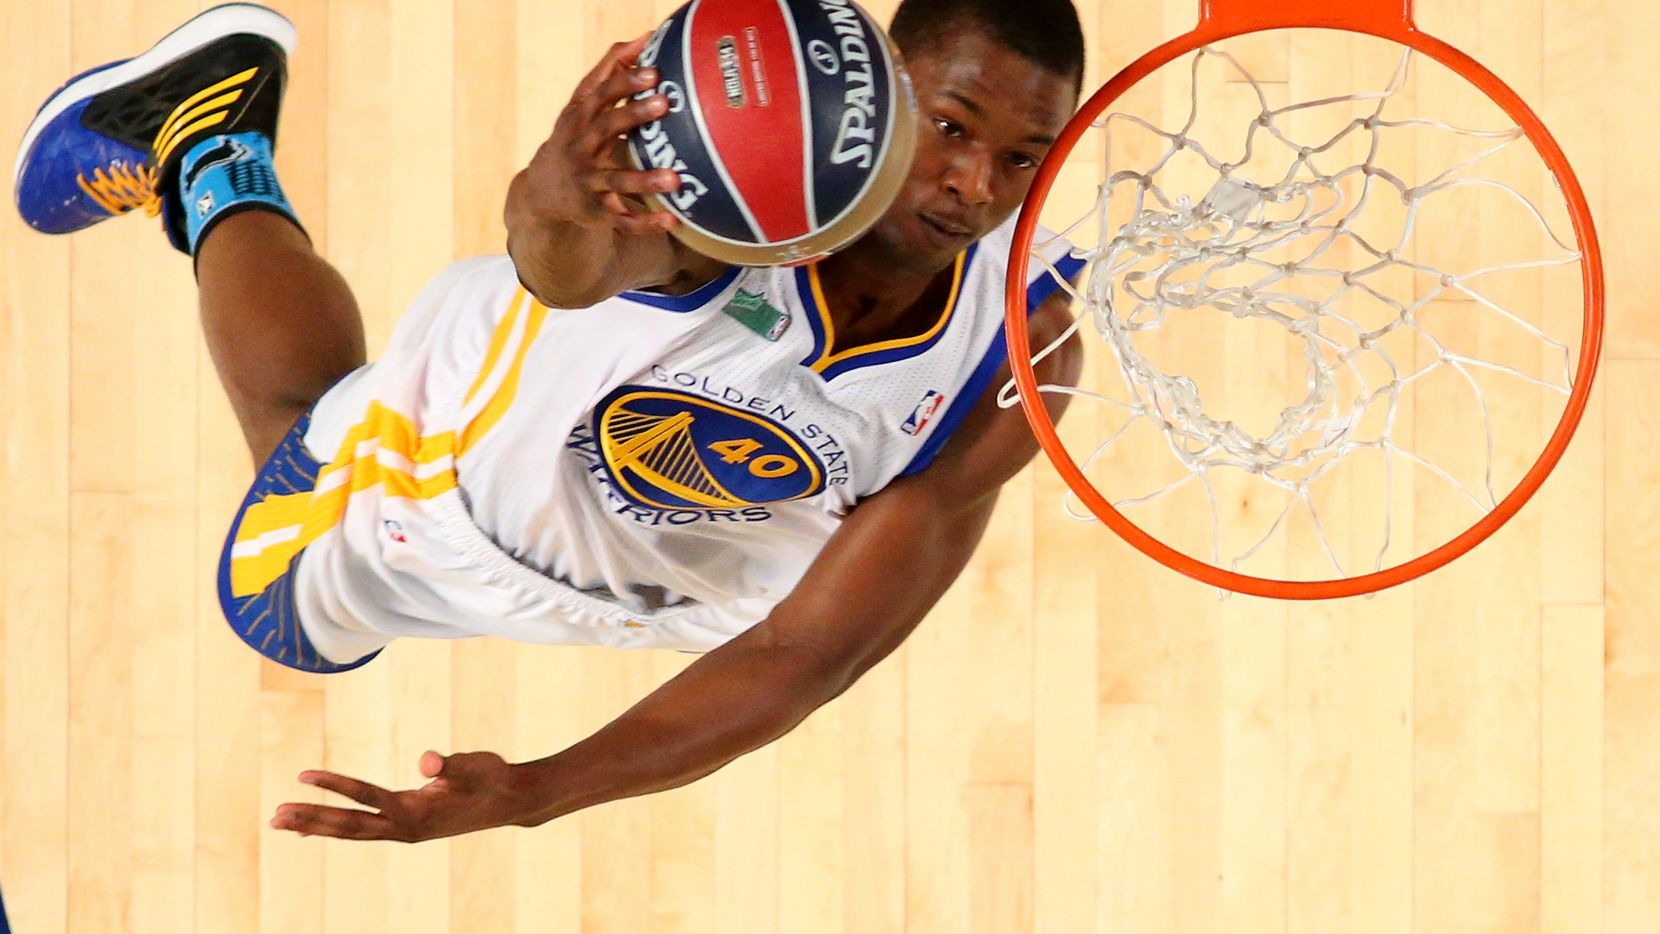 NEW ORLEANS, LA - FEBRUARY 15:  Western Conference All-Star Harrison Barnes #40 of the Golden State Warriors dunks during the Sprite Slam Dunk Contest 2014 as part of the 2014 NBA All-Star Weekend at the Smoothie King Center on February 15, 2014 in New Orleans, Louisiana. NOTE TO USER: User expressly acknowledges and agrees that, by downloading and or using this photograph, User is consenting to the terms and conditions of the Getty Images License Agreement.  (Photo by Ronald Martinez/Getty Images)